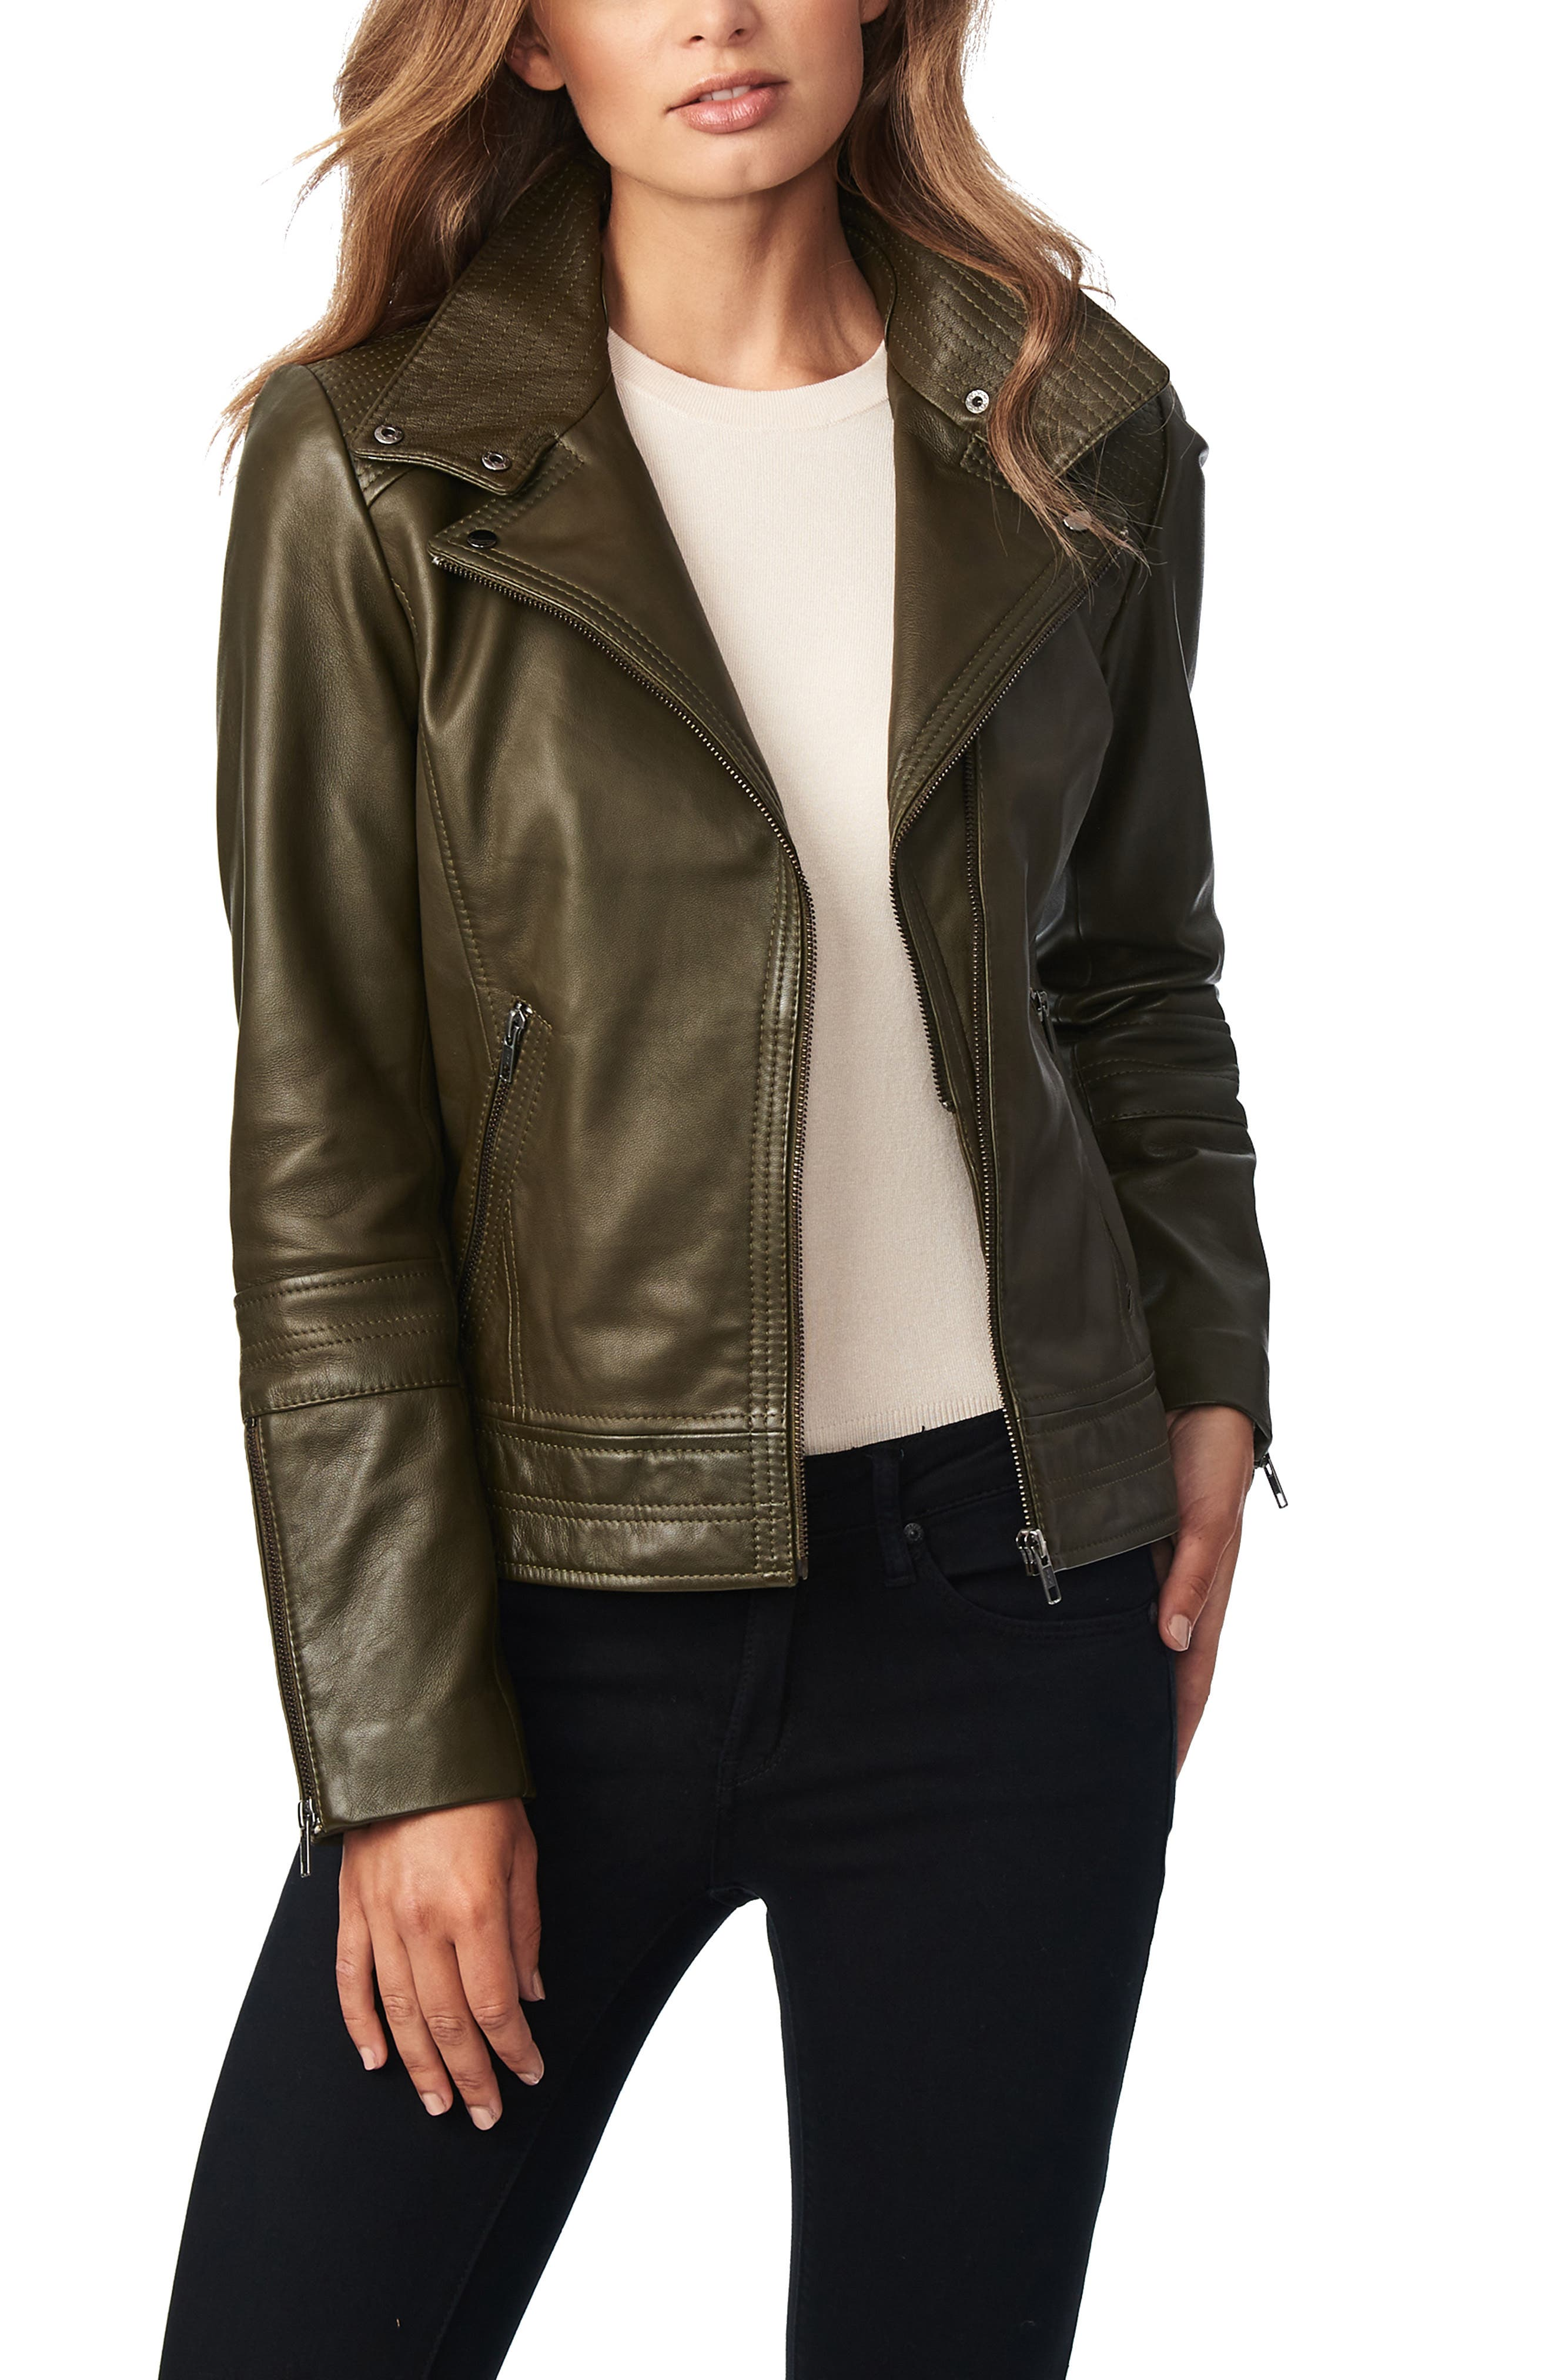 Trapunto stitching and vertical seams enhance the chic fitted silhouette of a modern moto jacket crafted from genuine leather. Style Name: Bernardo Leather Moto Jacket. Style Number: 5674939. Available in stores.